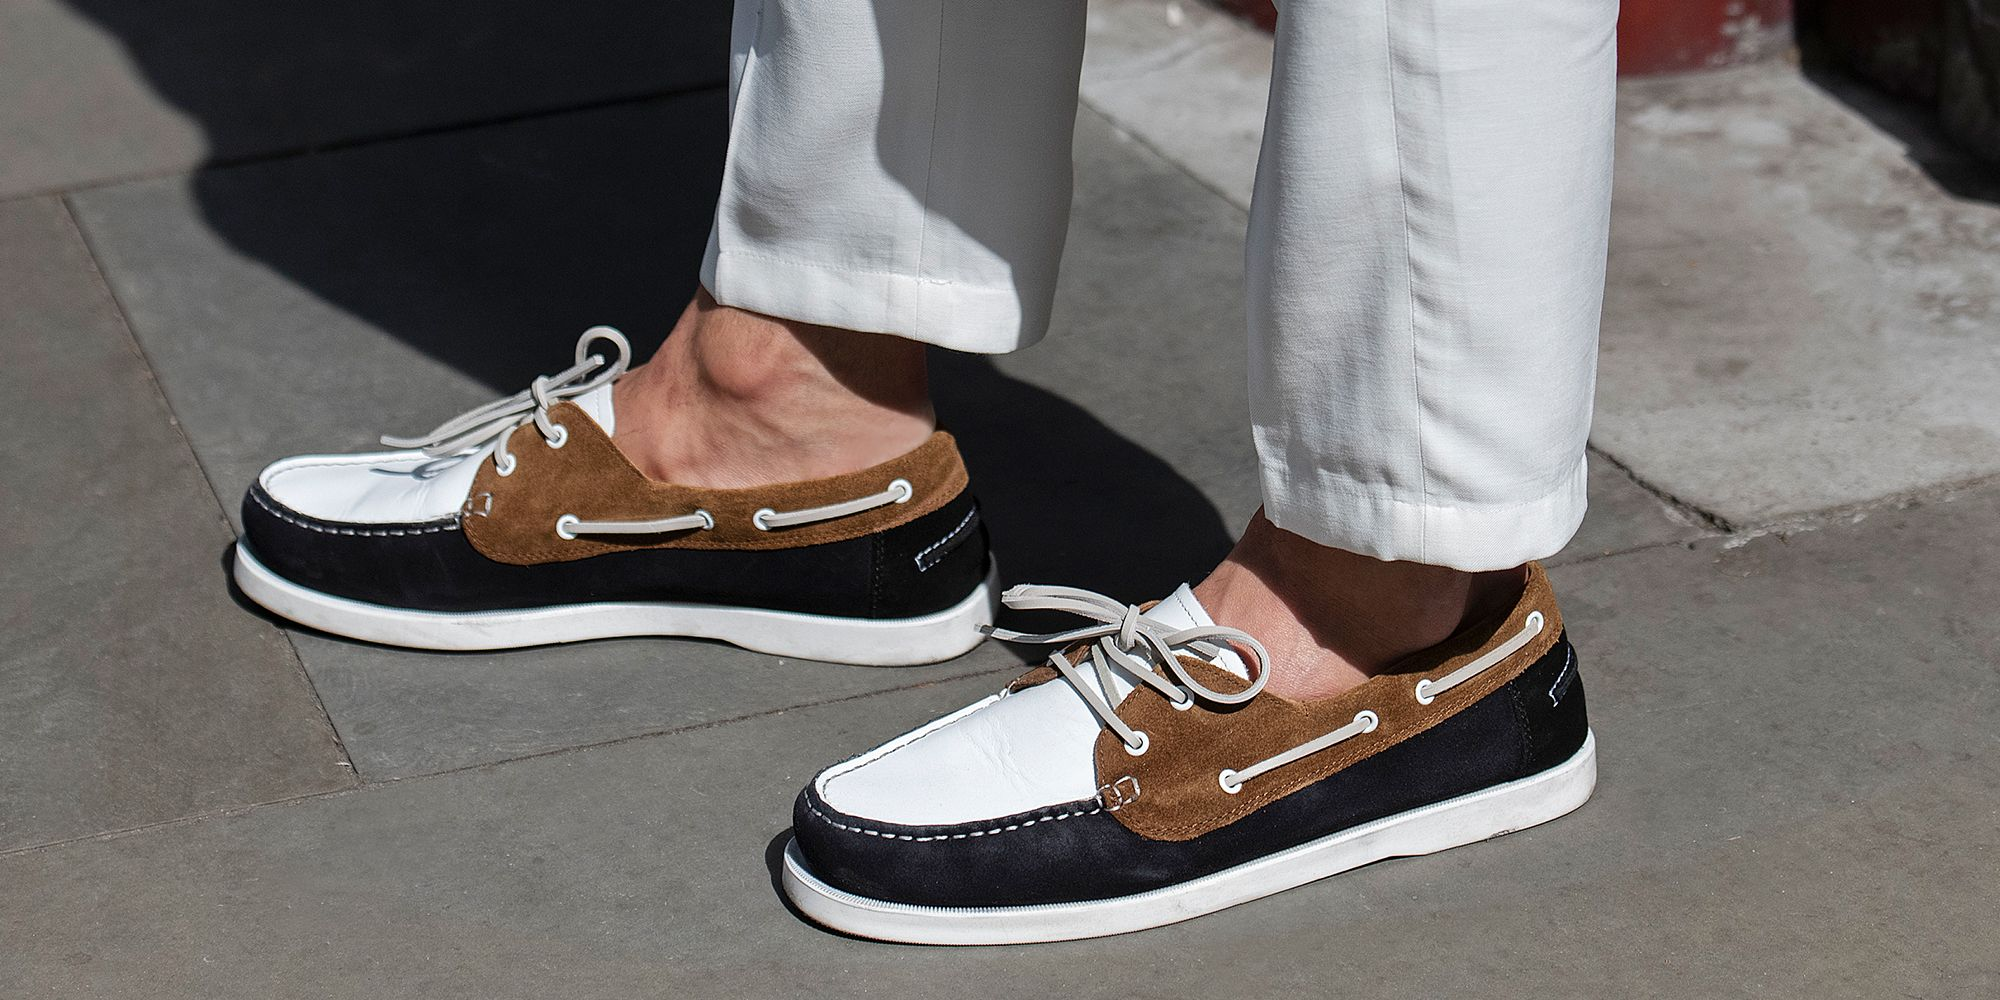 The 12 Best Boat Shoes to Wear This Summer (Even If You're Not a Boat Shoe Guy)